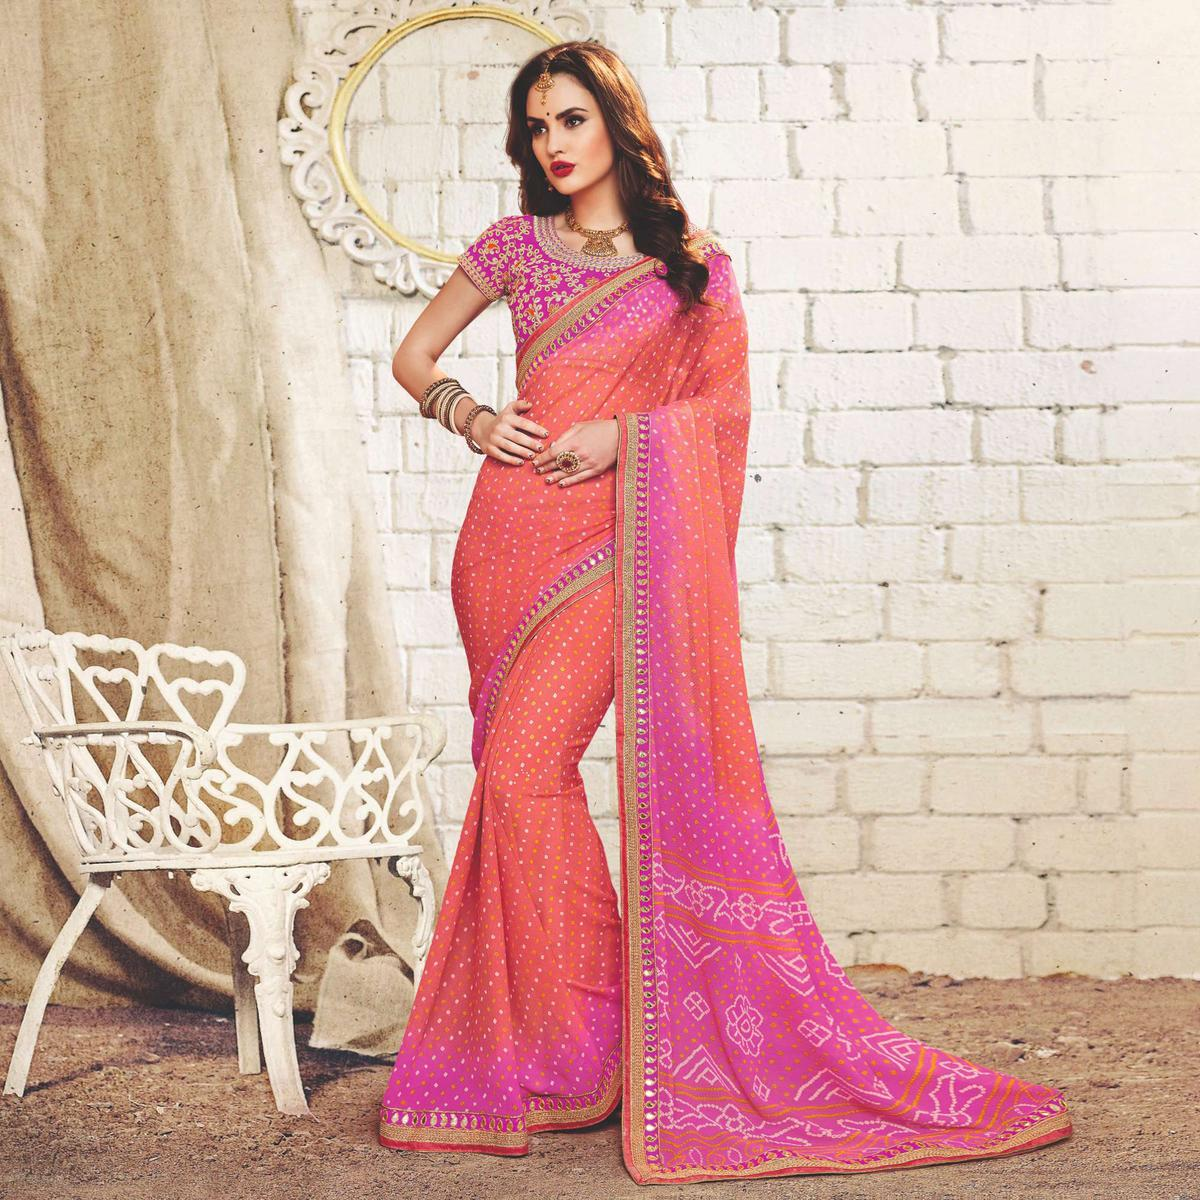 Peach - Pink Colored Traditional Bandhani Printed Georgette Saree